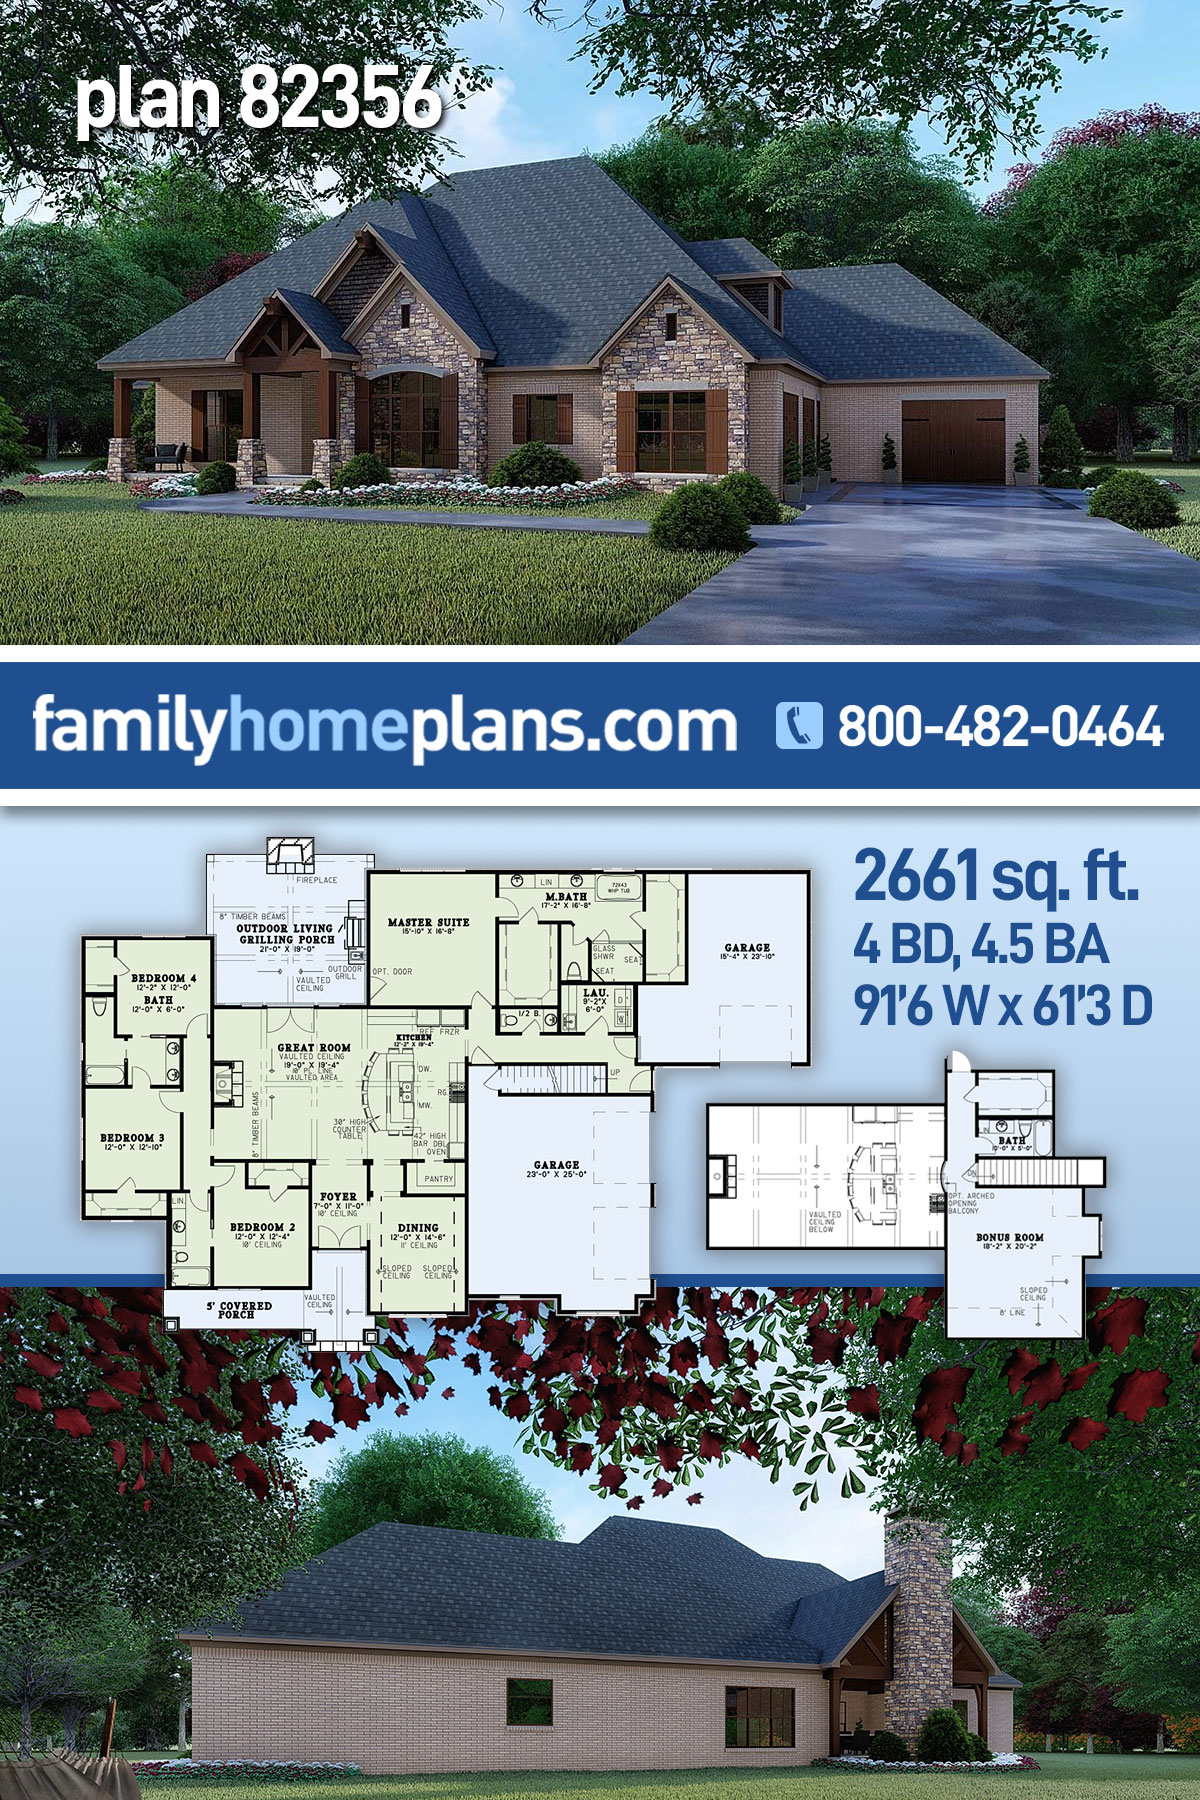 Craftsman, European, Traditional House Plan 82356 with 4 Beds, 5 Baths, 3 Car Garage